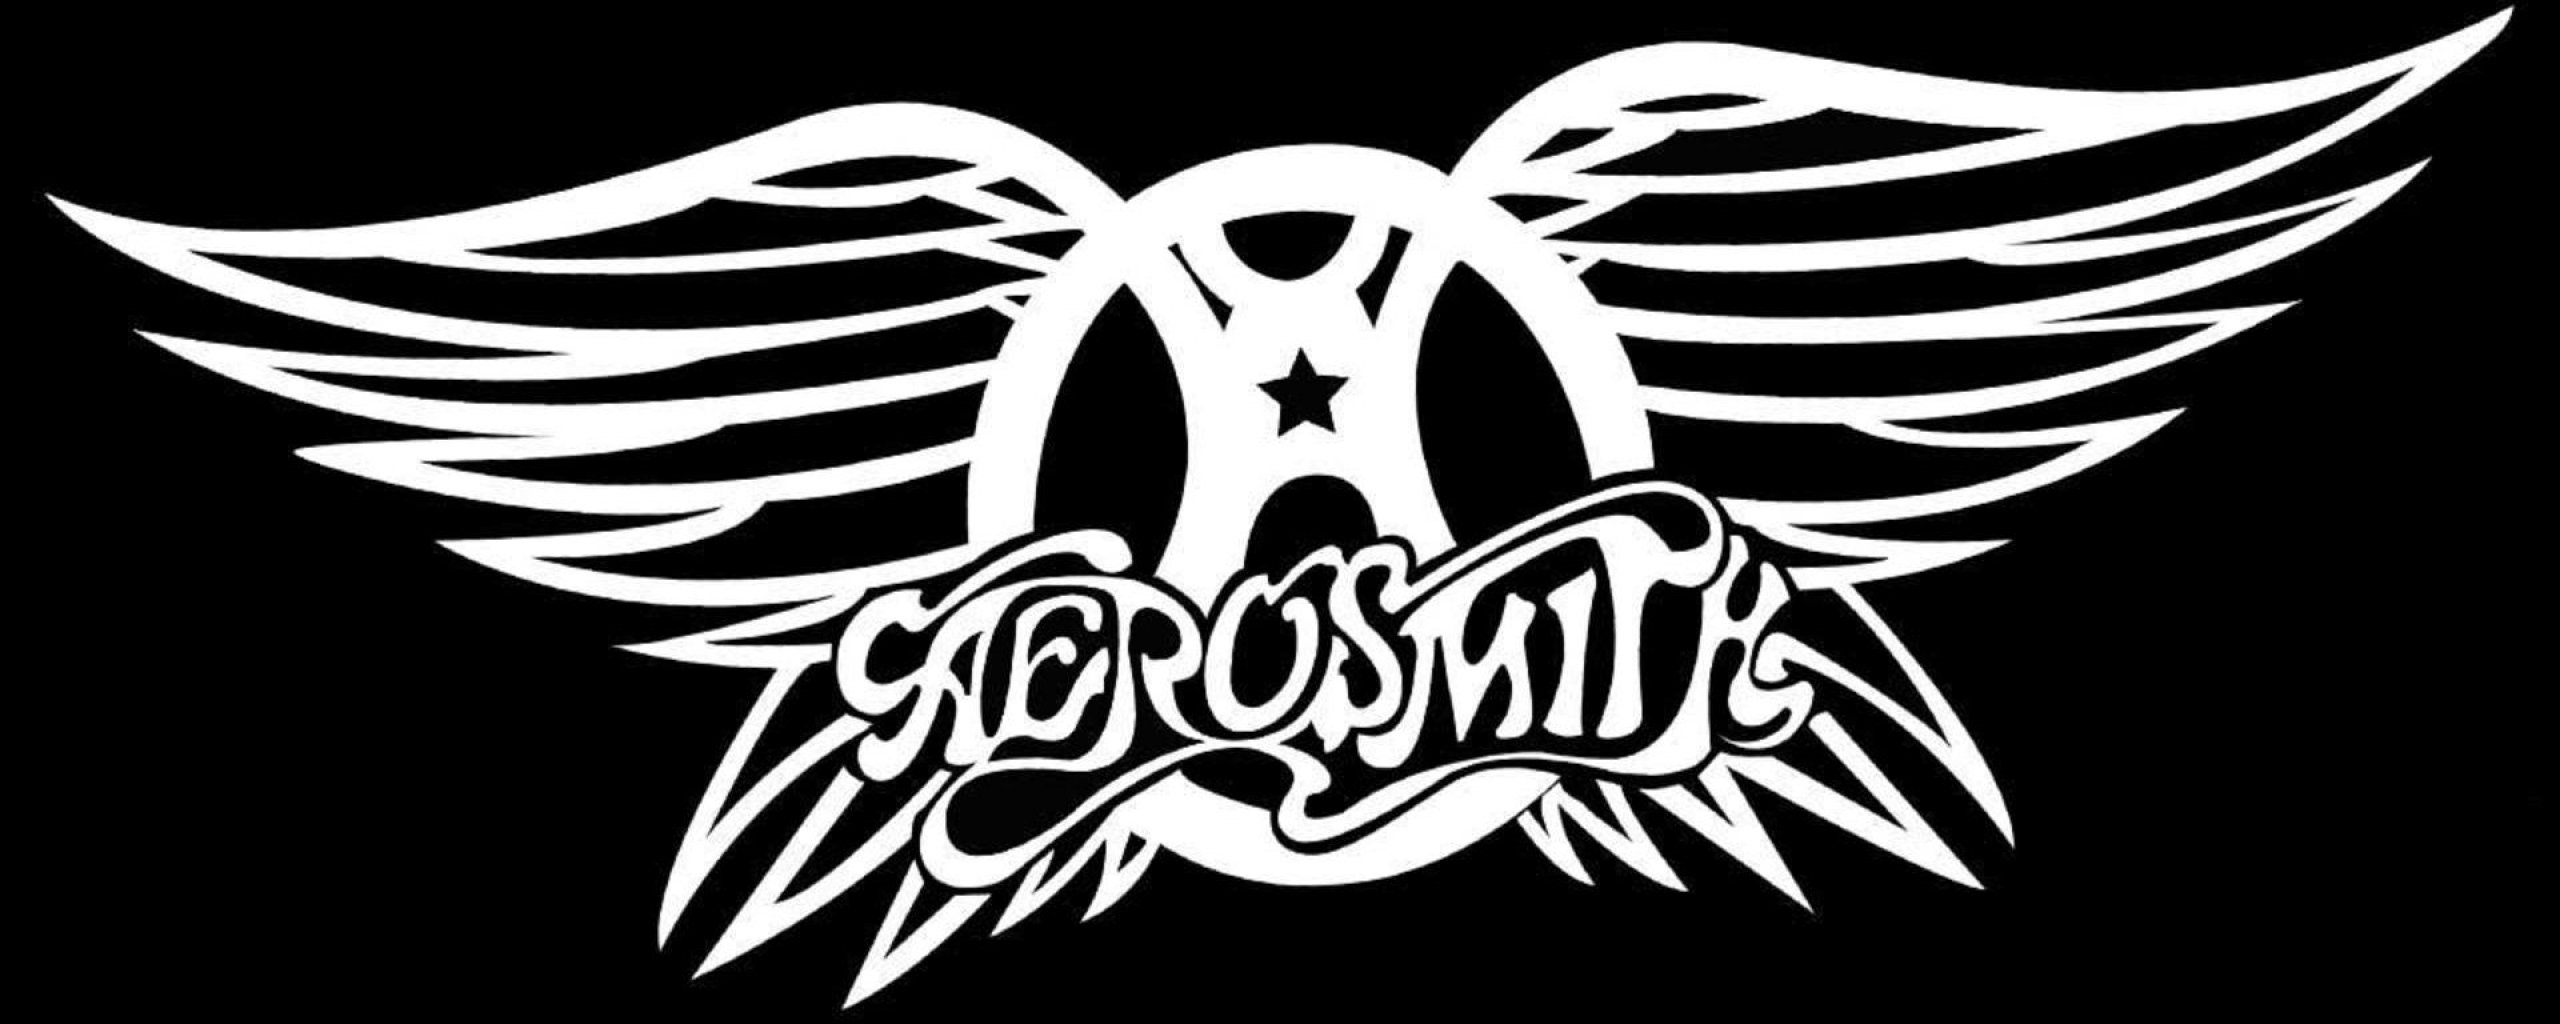 Free Download Download Wallpaper 2560x1024 Aerosmith Logo Symbol